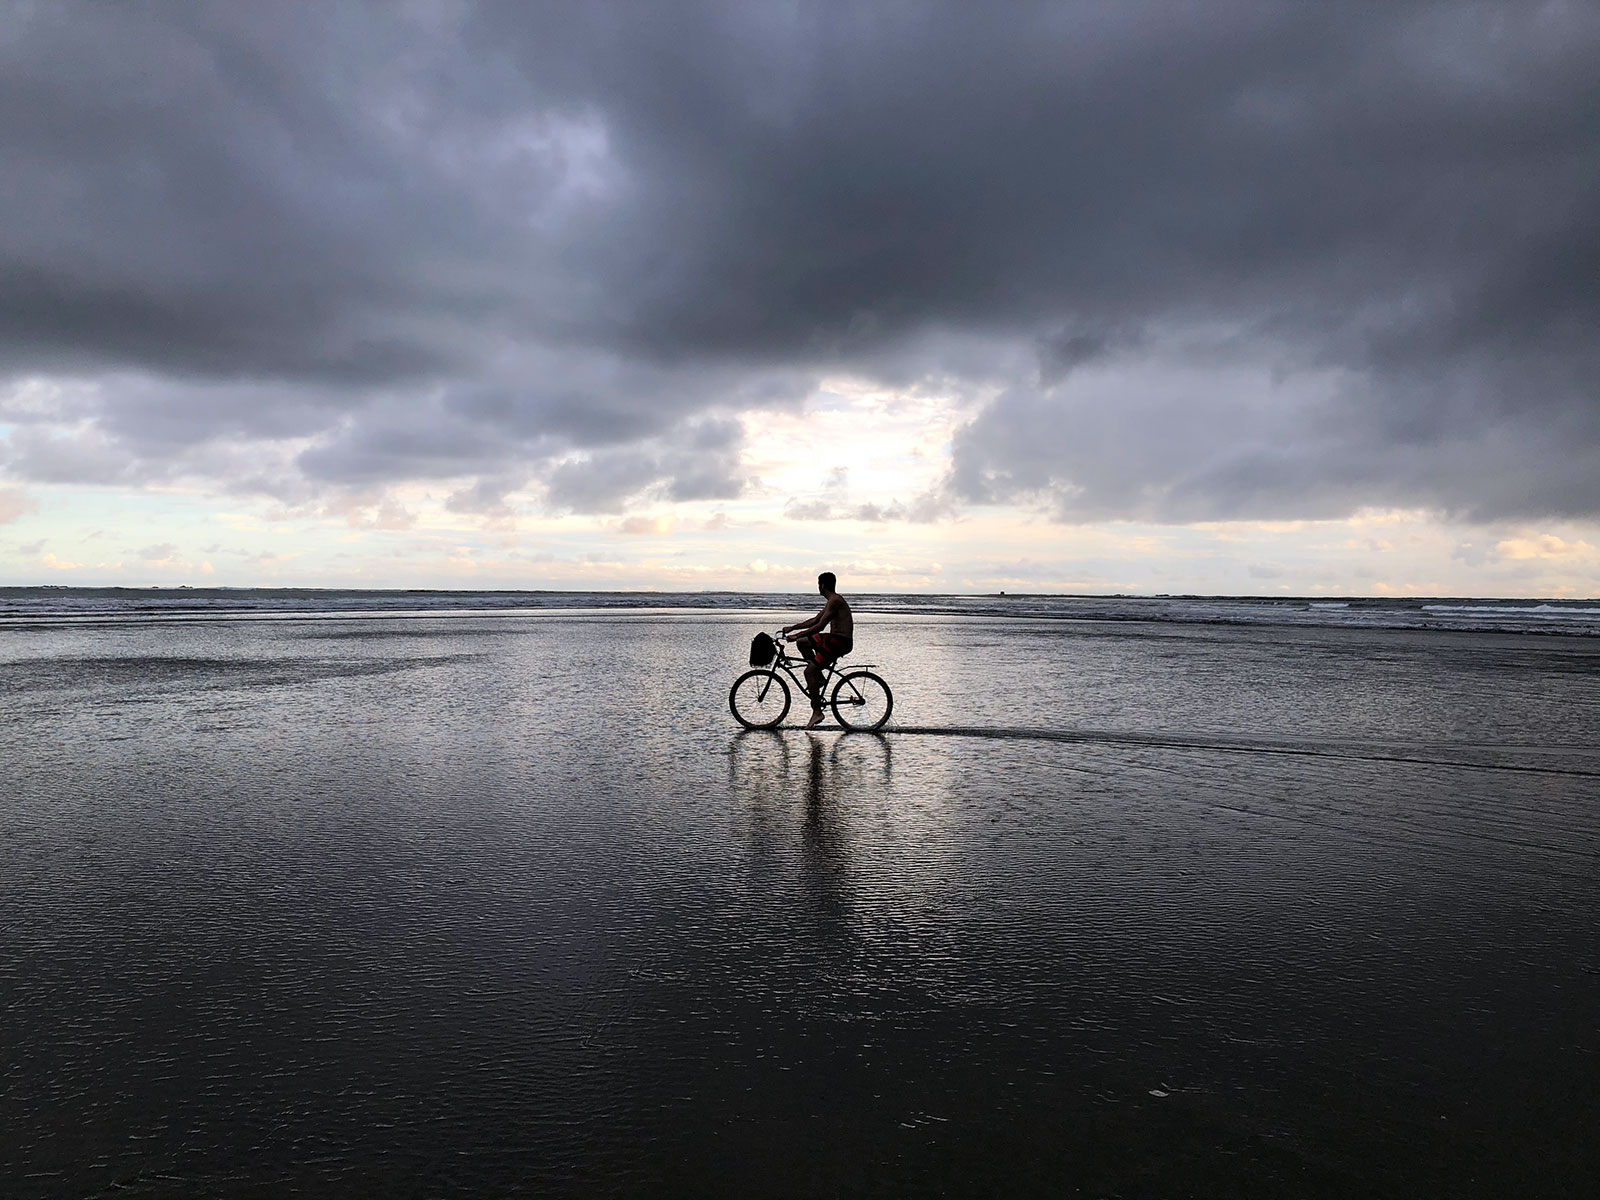 Jimmy riding a bike on the beach